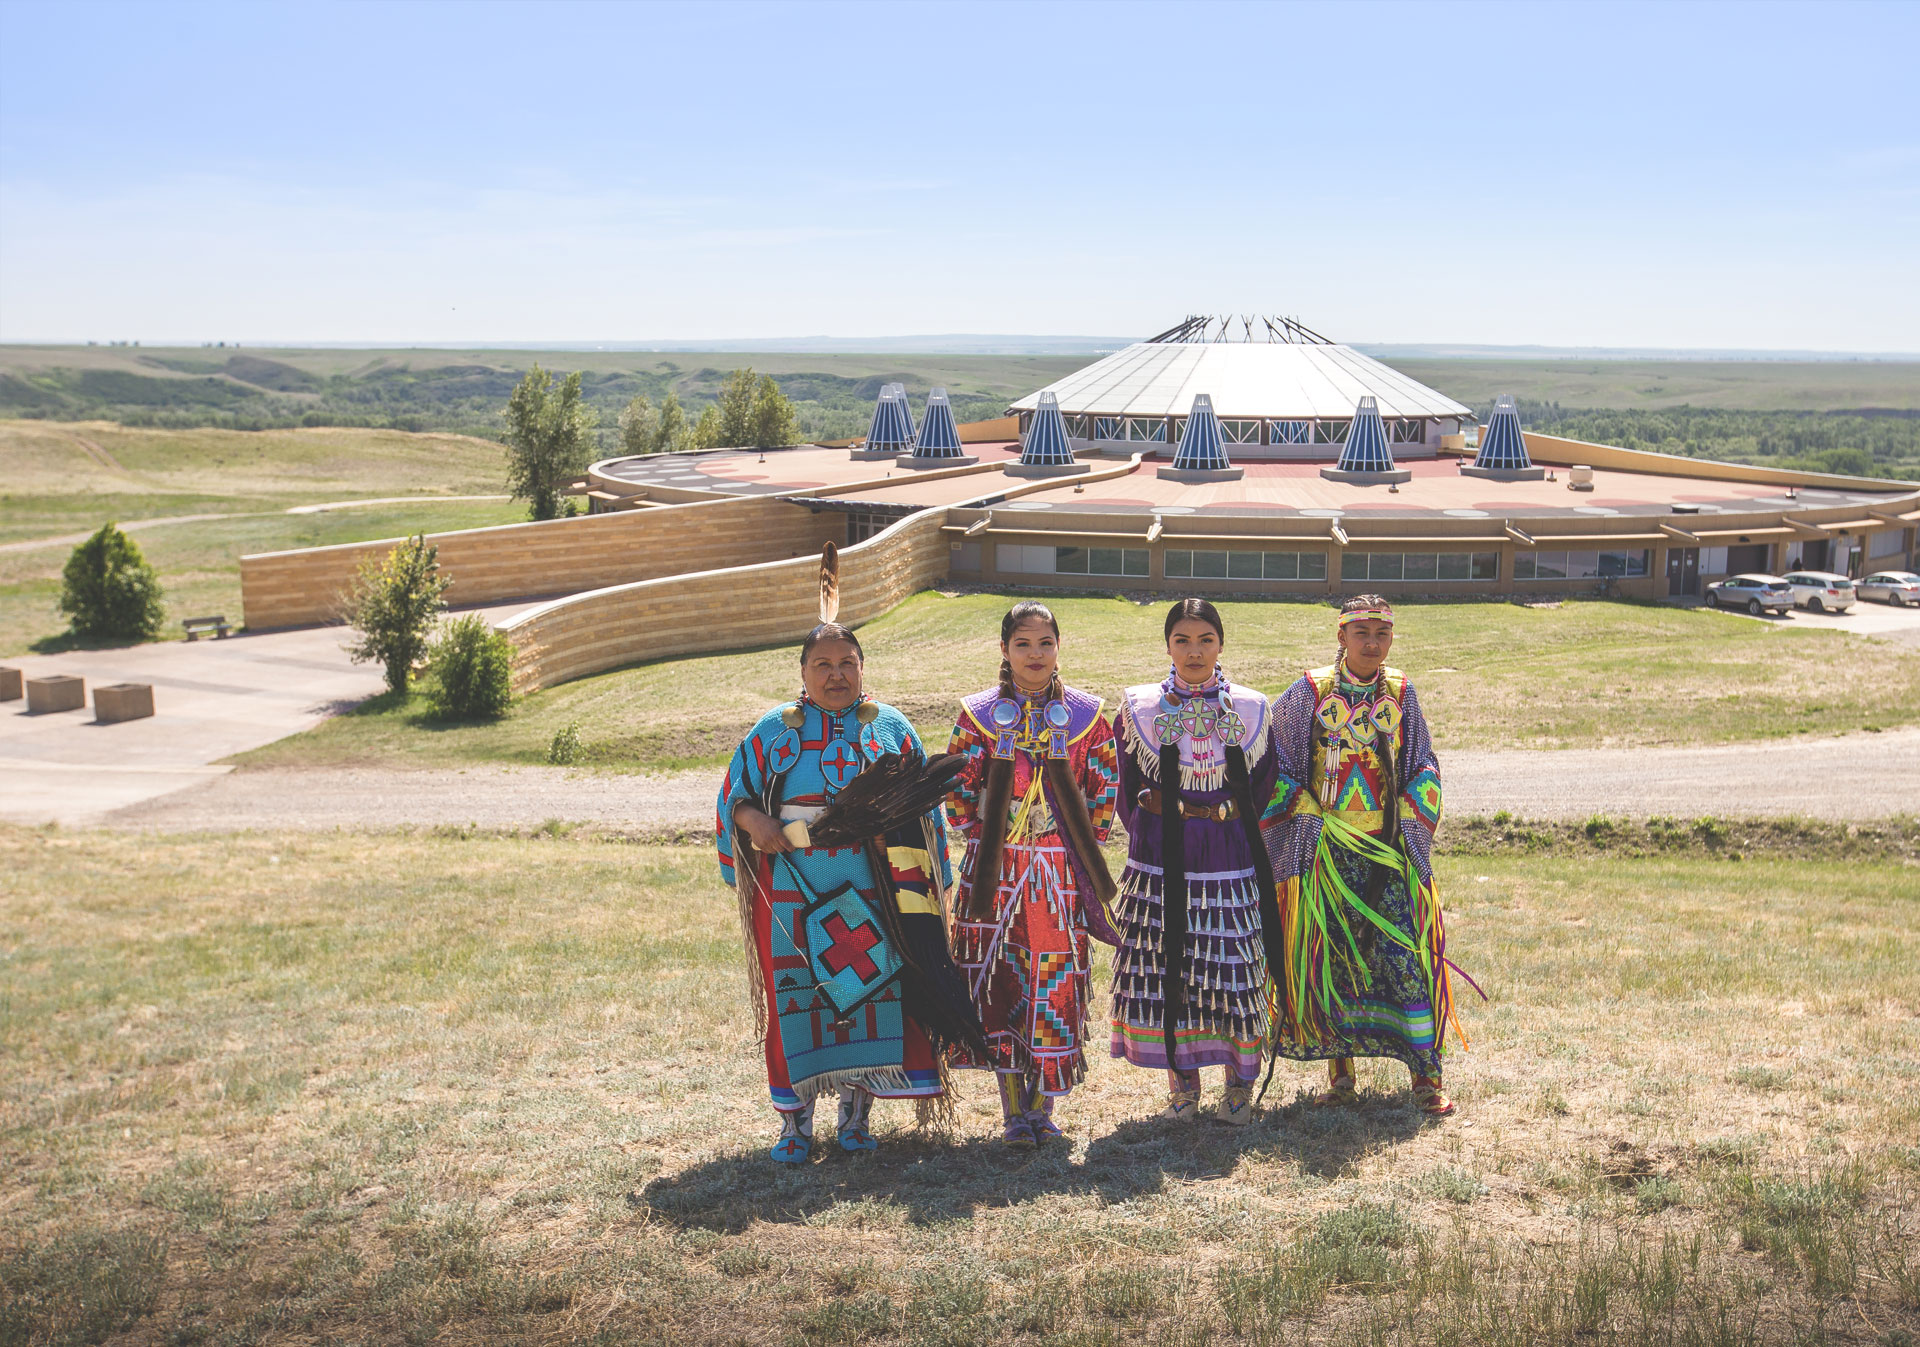 Experience authentic indigenous culture at Blackfoot Crossing Historical Park (Photo credit: Travel Alberta/Katie Goldie).